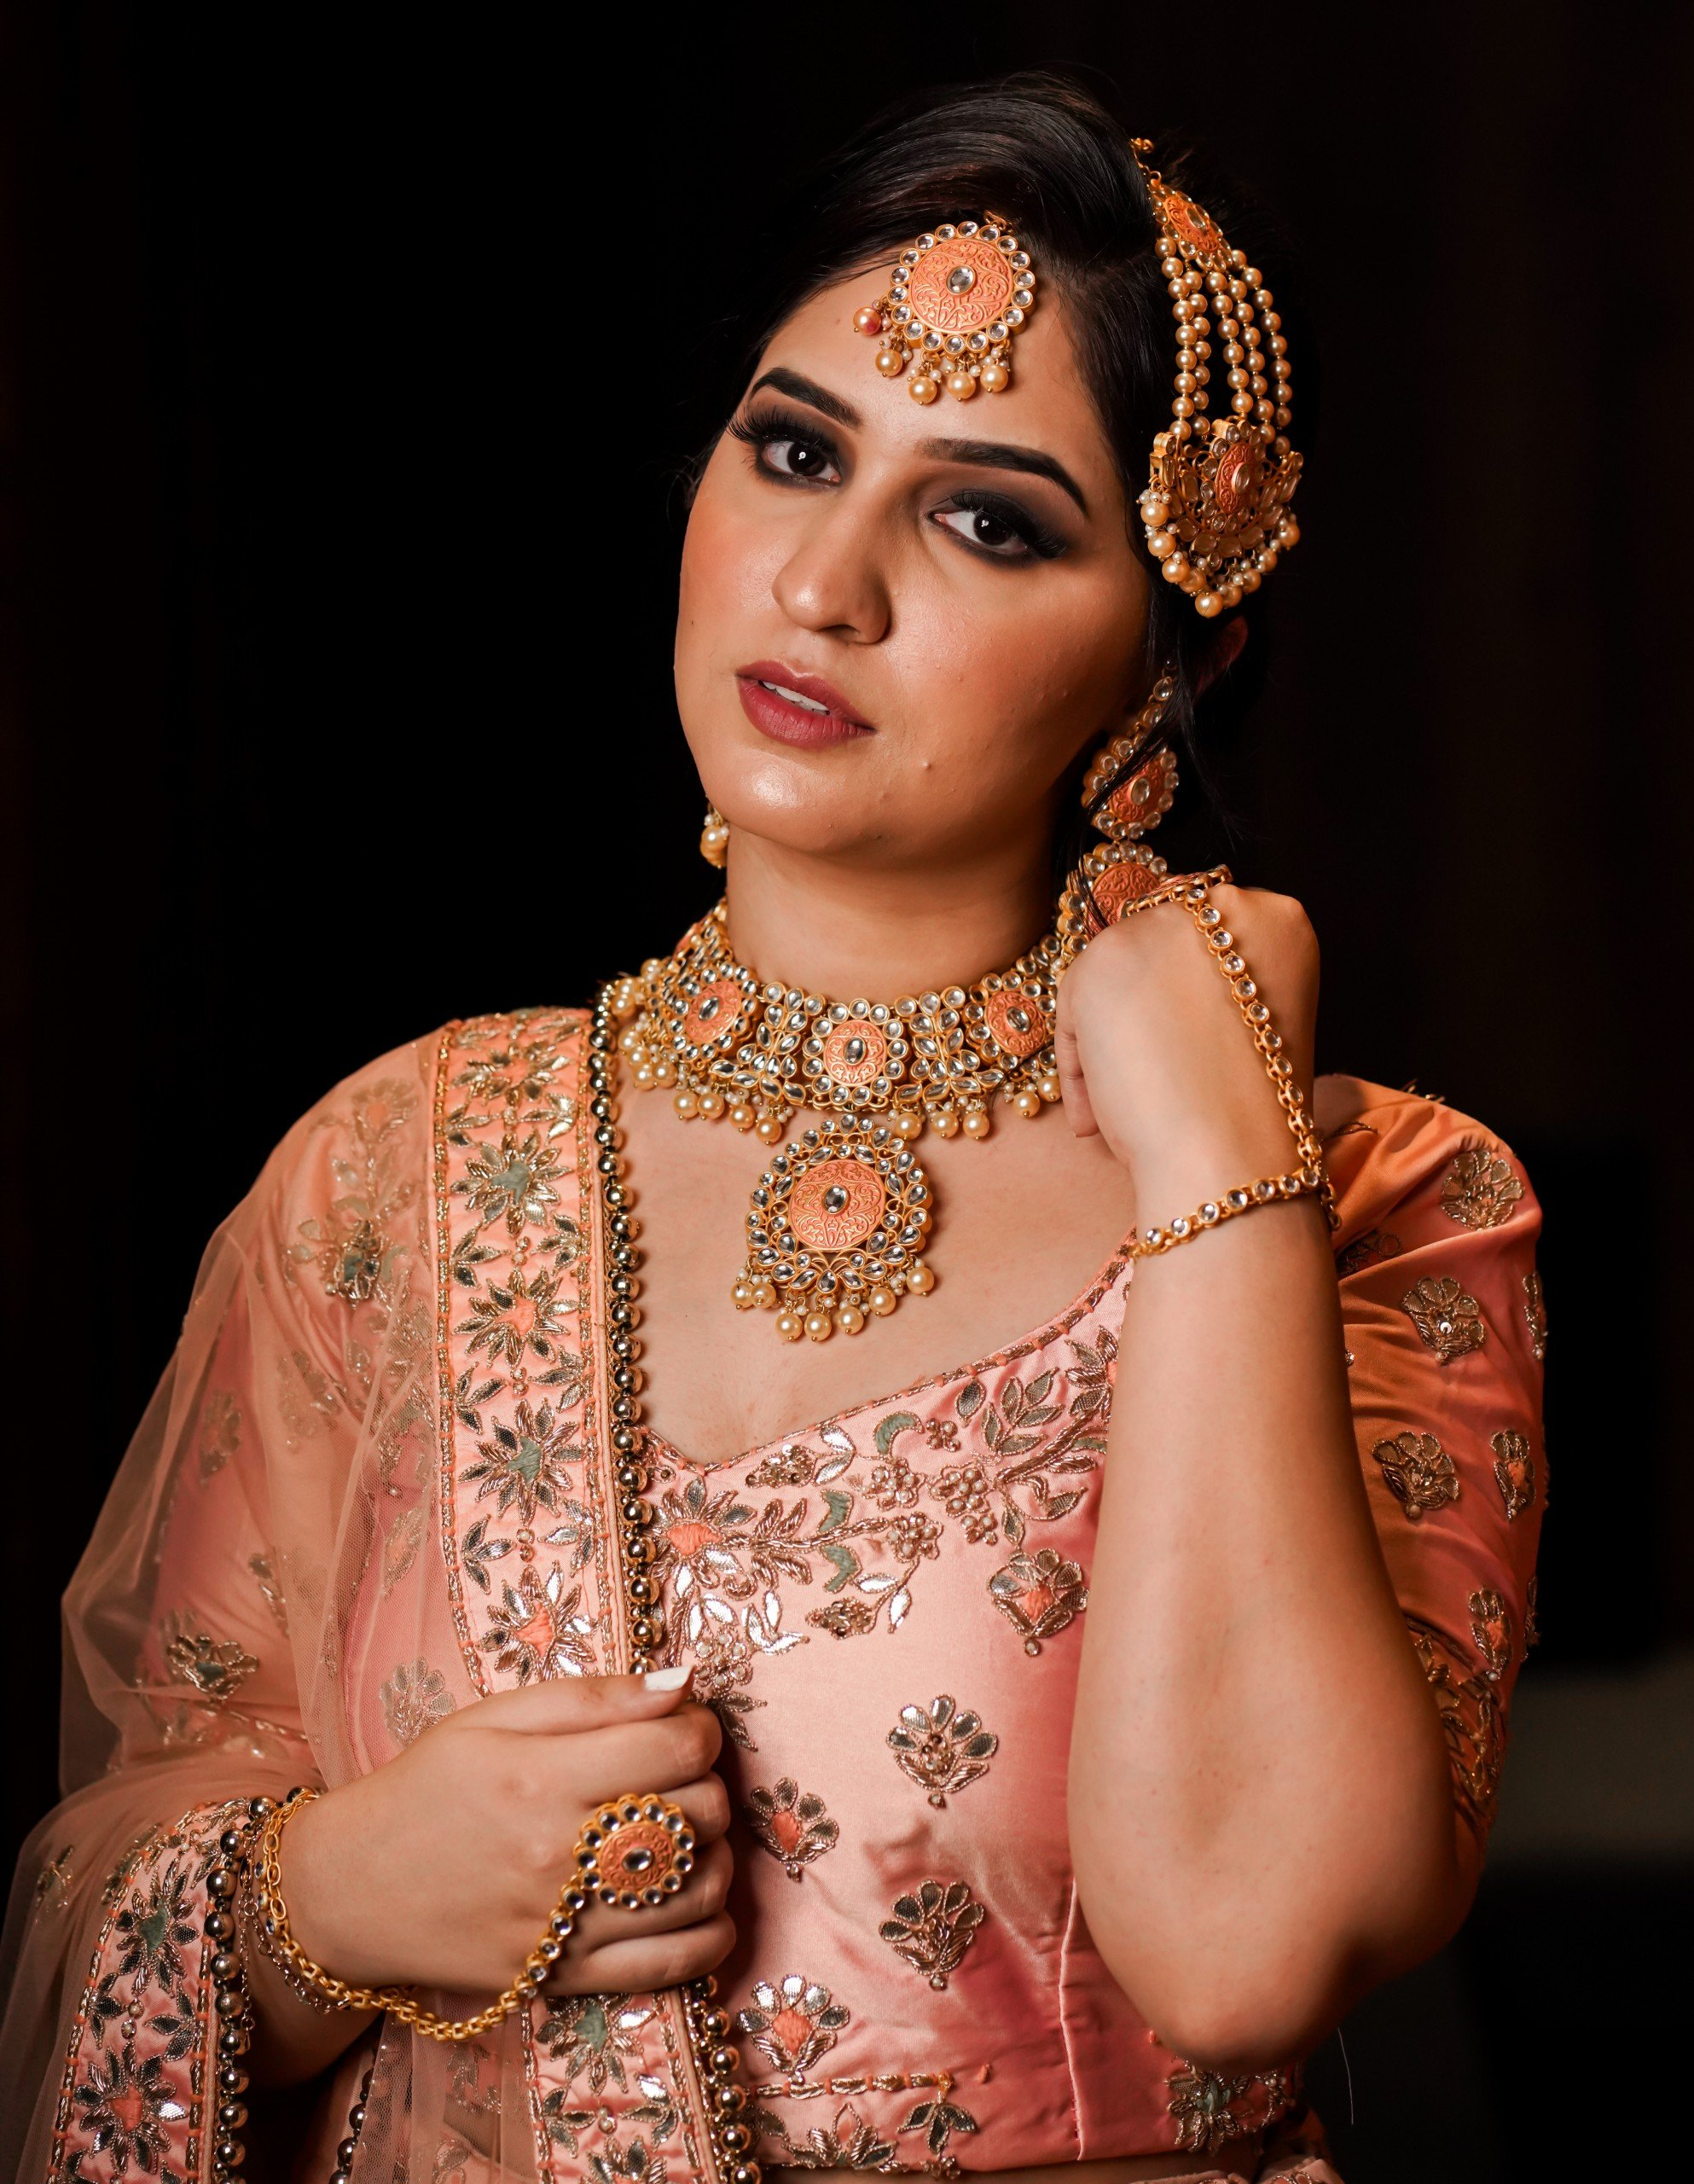 Pretty girl in traditional Indian bridal costume